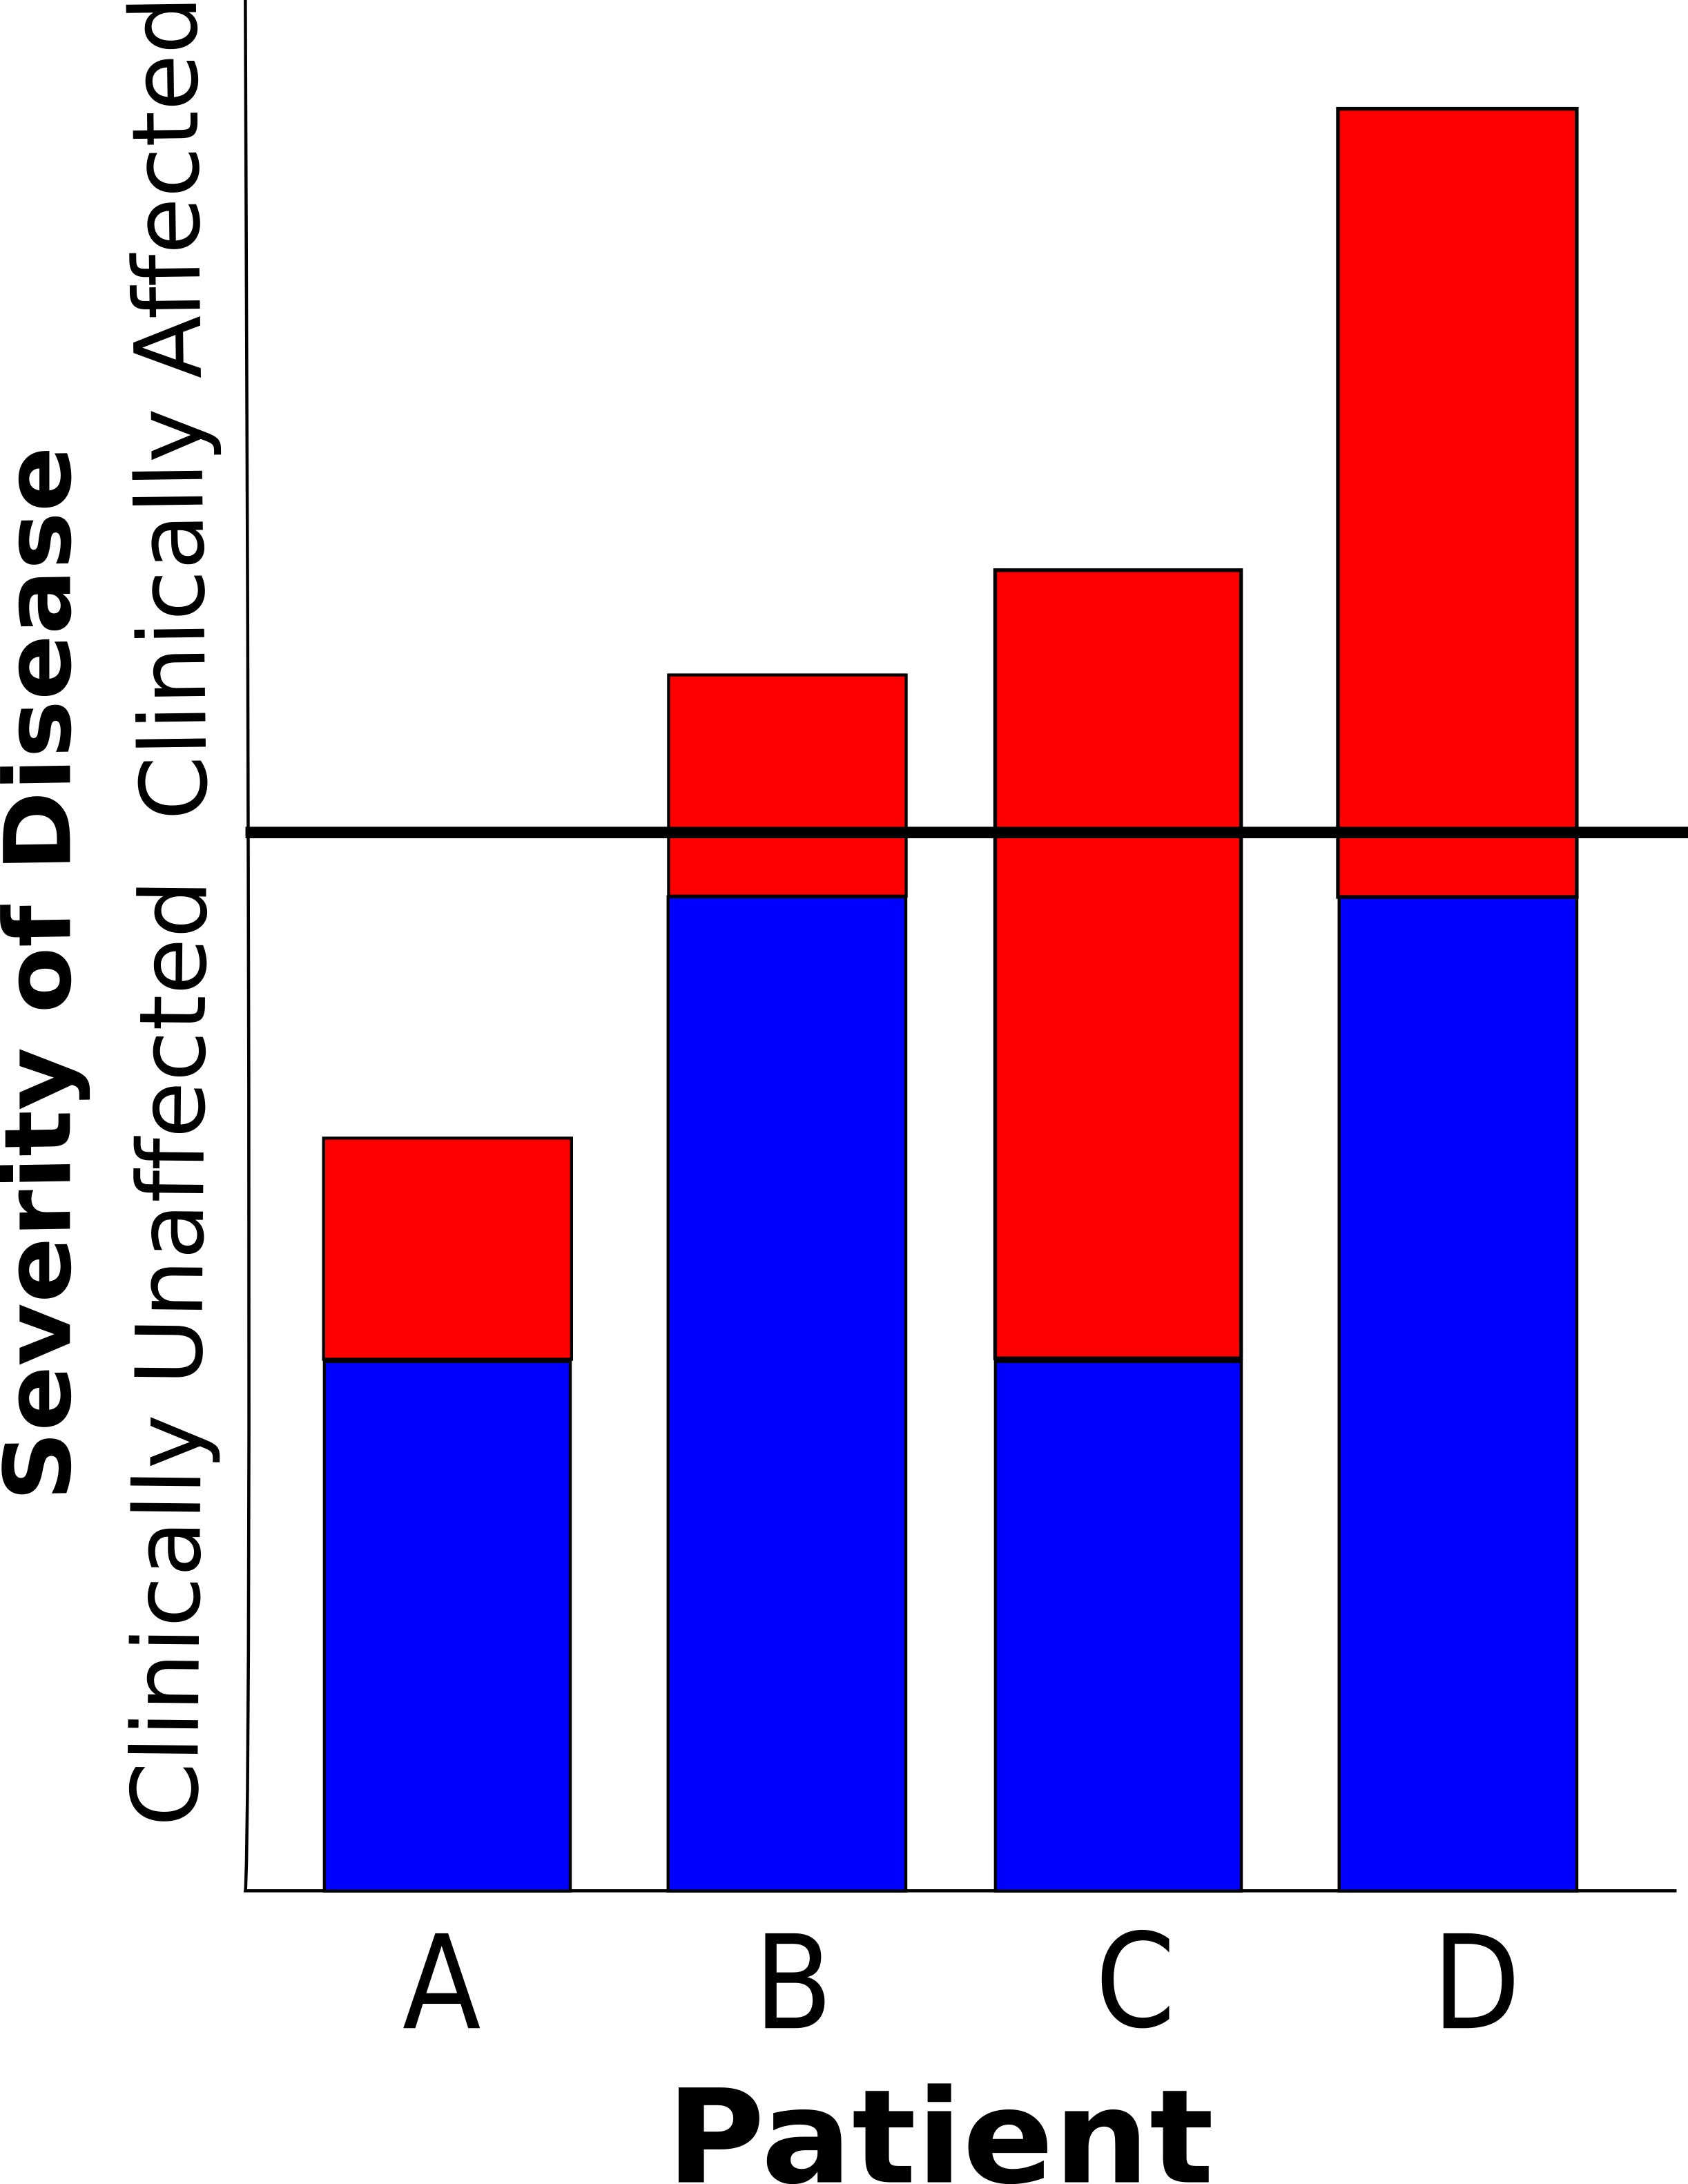 Figure 2: The threshold model of genetic predisposition to complex disease. Blue boxes represent genetic predisposition, and red boxes represent environmental predisposition. The horizontal black line represents a threshold, below which the individual is clinically unaffected. Patient A has a low genetic predisposition and low environmental exposure, and does not have the disease. Patient B has a large genetic predisposition, and a low environmental exposure is enough for them to exceed the threshold and be clinically affected. Patient C has a low genetic predisposition, but a large environmental exposure, and is also clinically affected. Finally, Patient D has a large genetic and environmental exposure, and is more severely affected.